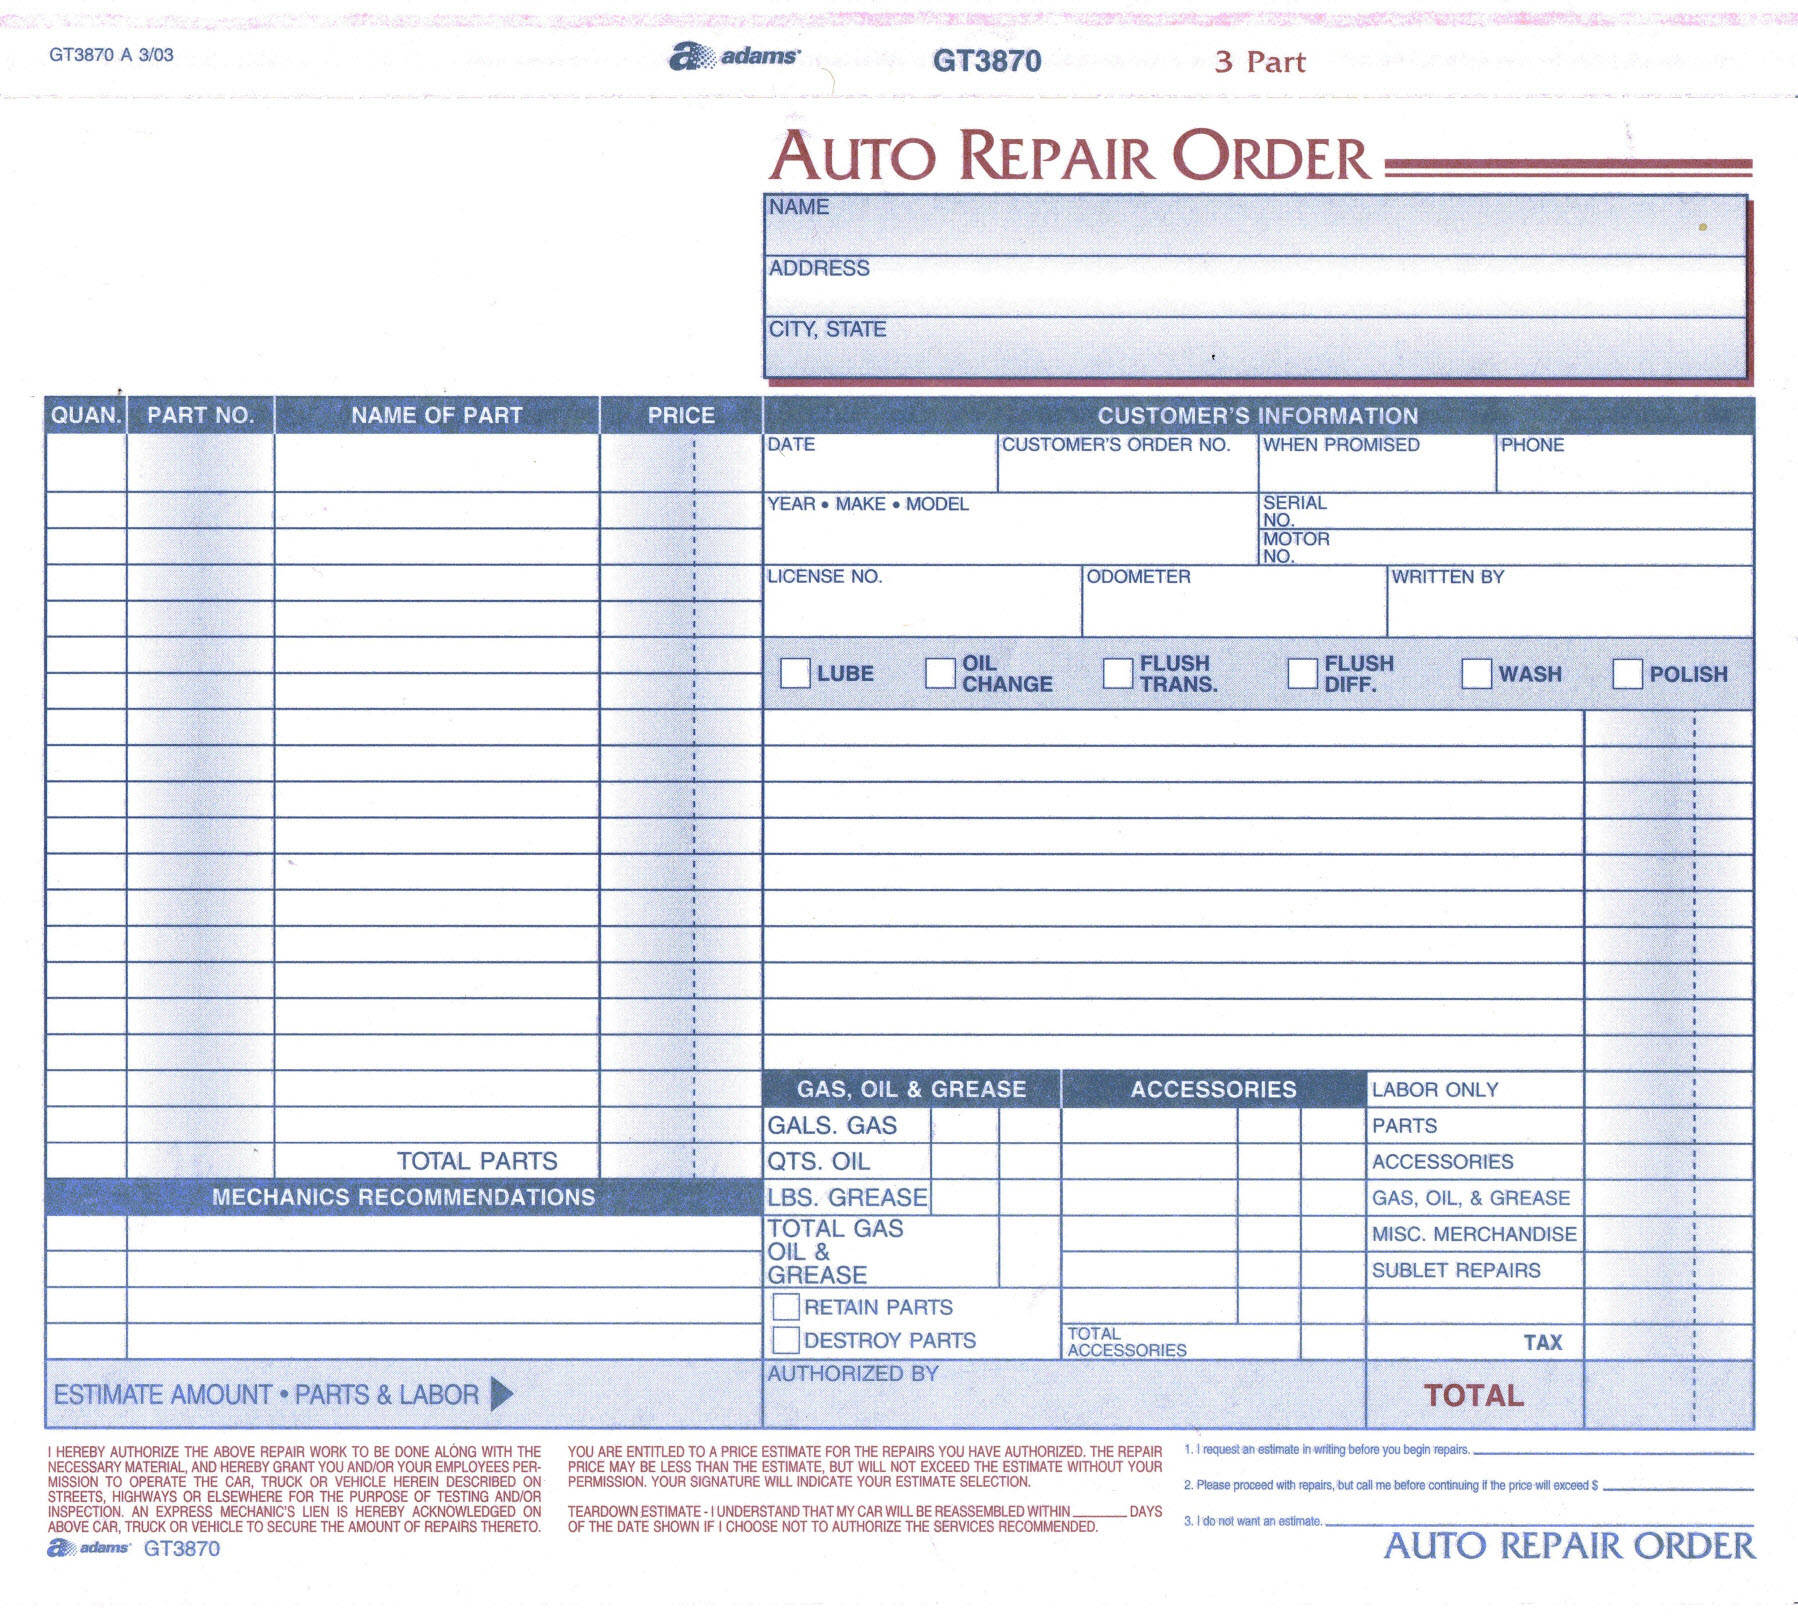 Work Order Forms Auto Repair With Carbon 3 Part 8 12 x 7 Box Of